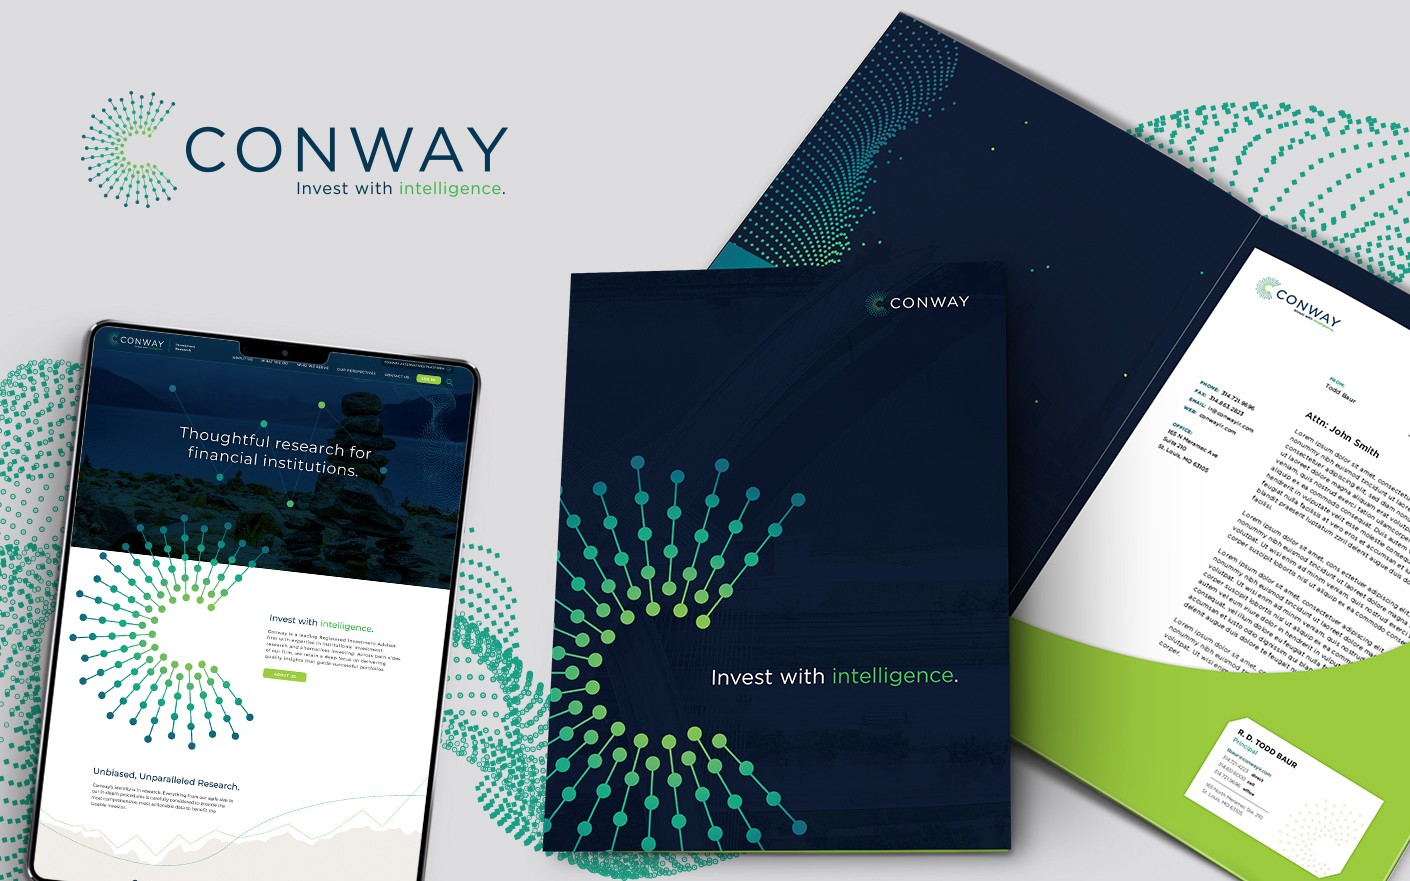 Conway graphic design and web design